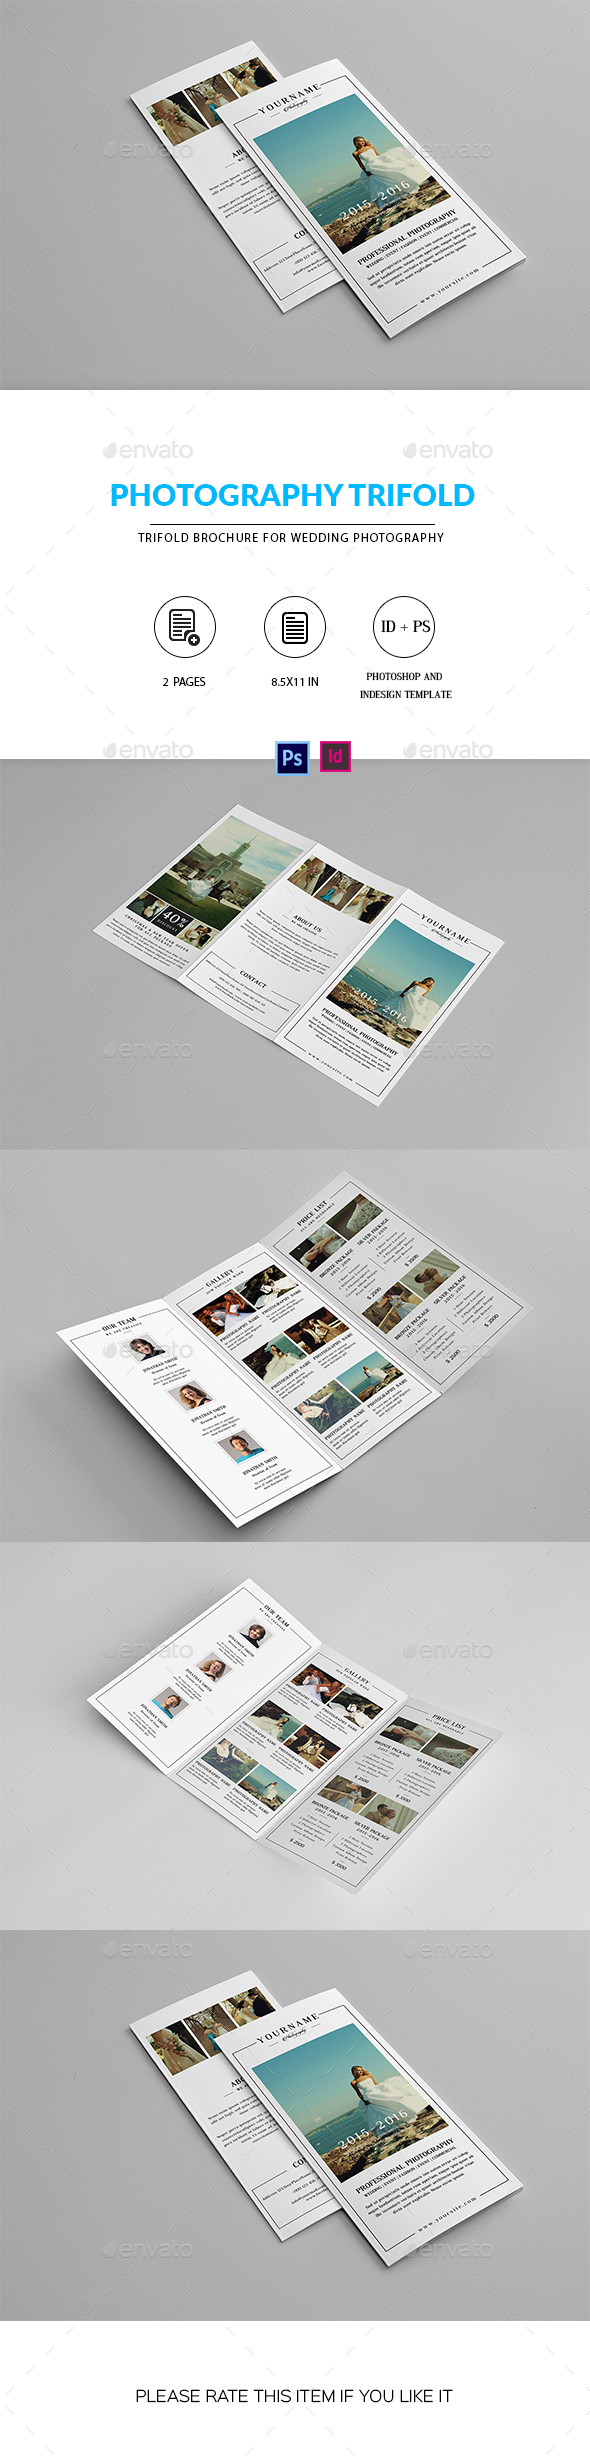 Wedding Photographer Trifold Brochure - Corporate Brochures